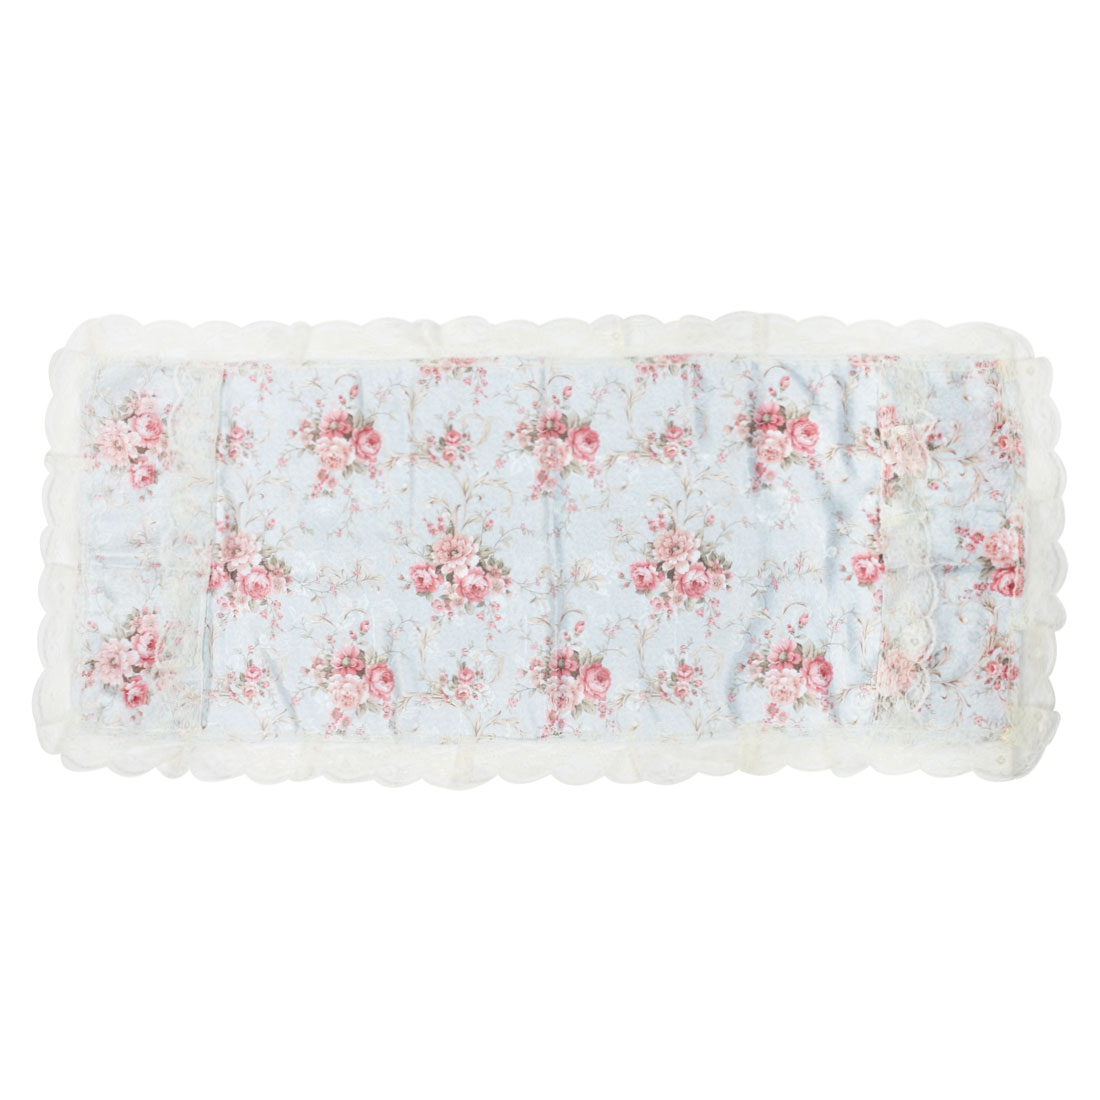 Household Refrigerator Fridge Desktop Polyester Flower Pattern Dustproof Dust Cover